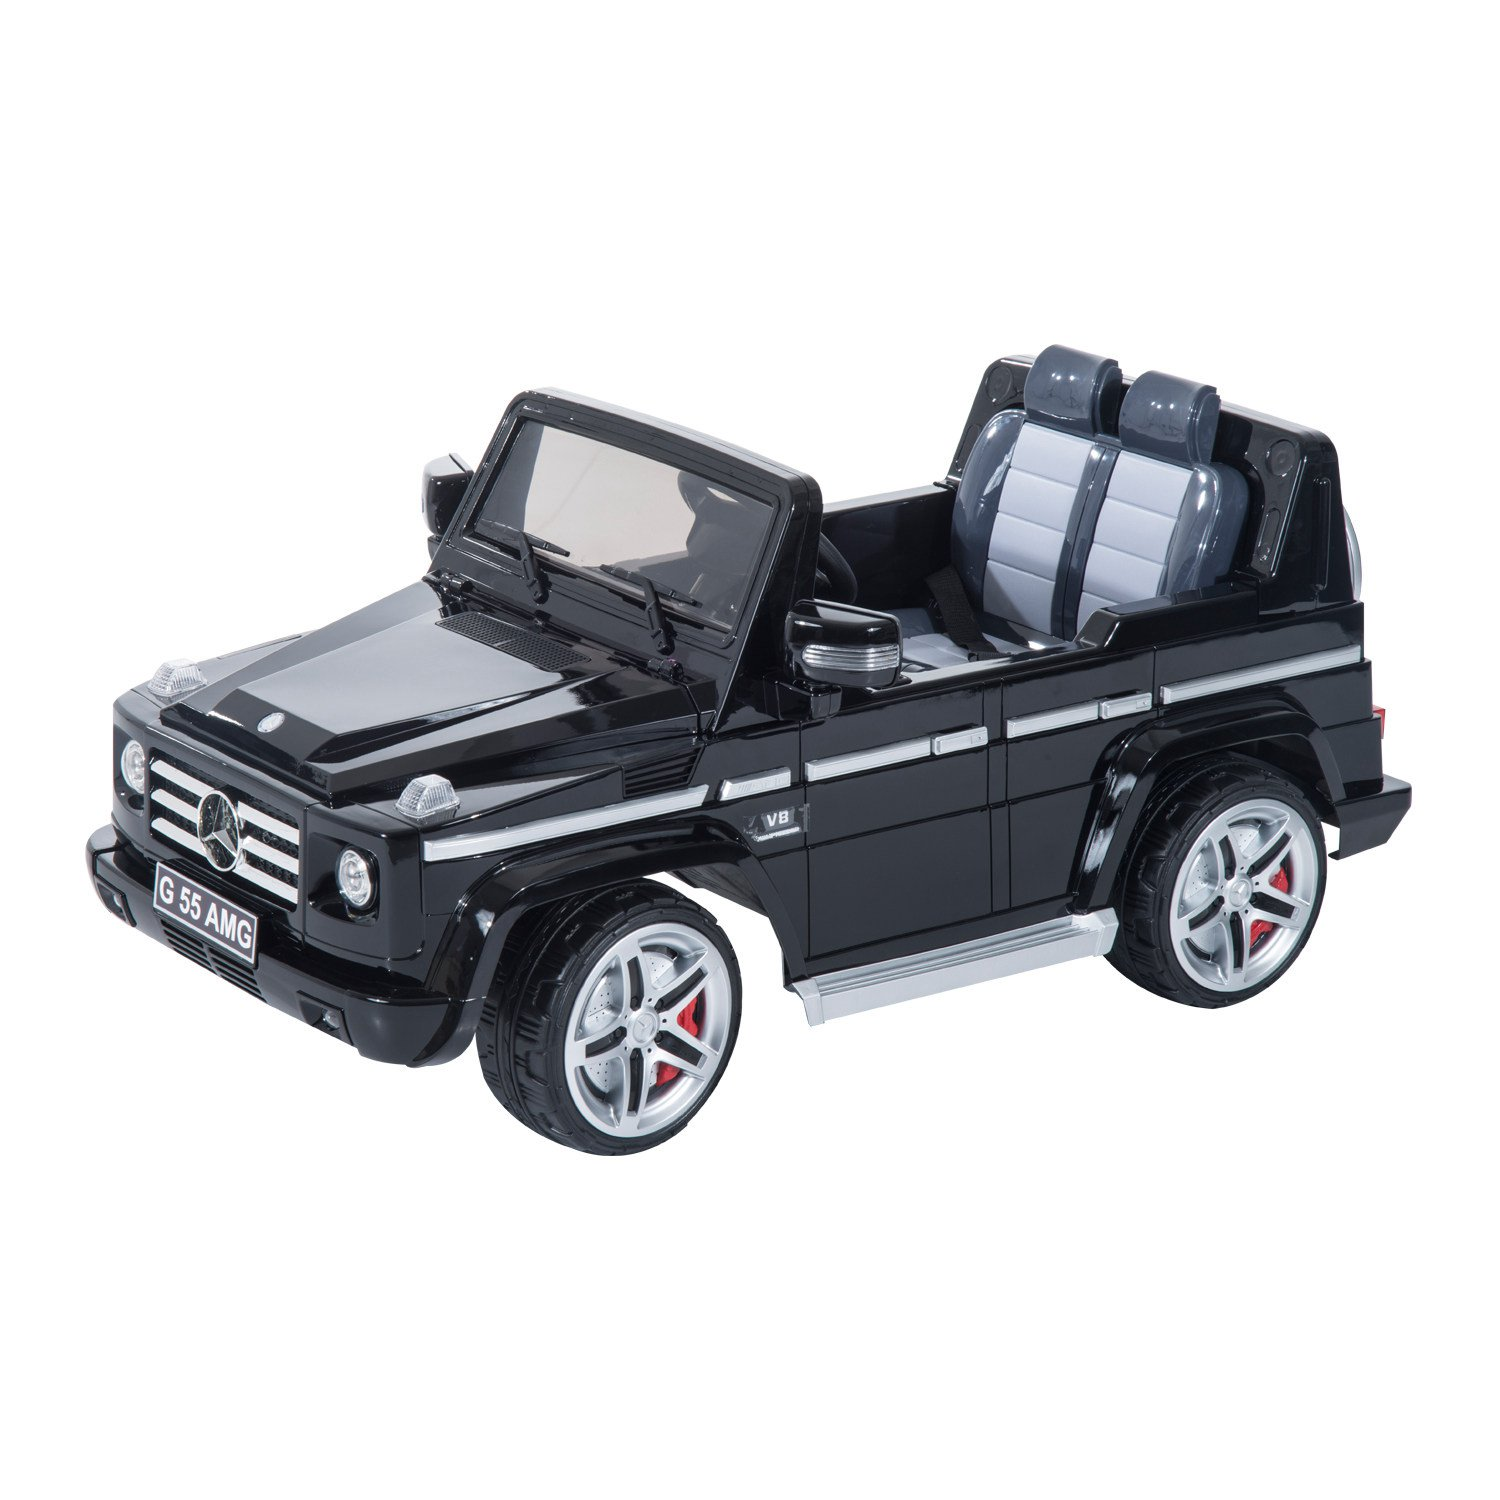 Aosom Mercedes-Benz G55 12V Kids Electric Battery Toy Ride-On Black SUV Car with Remote... by Soozier